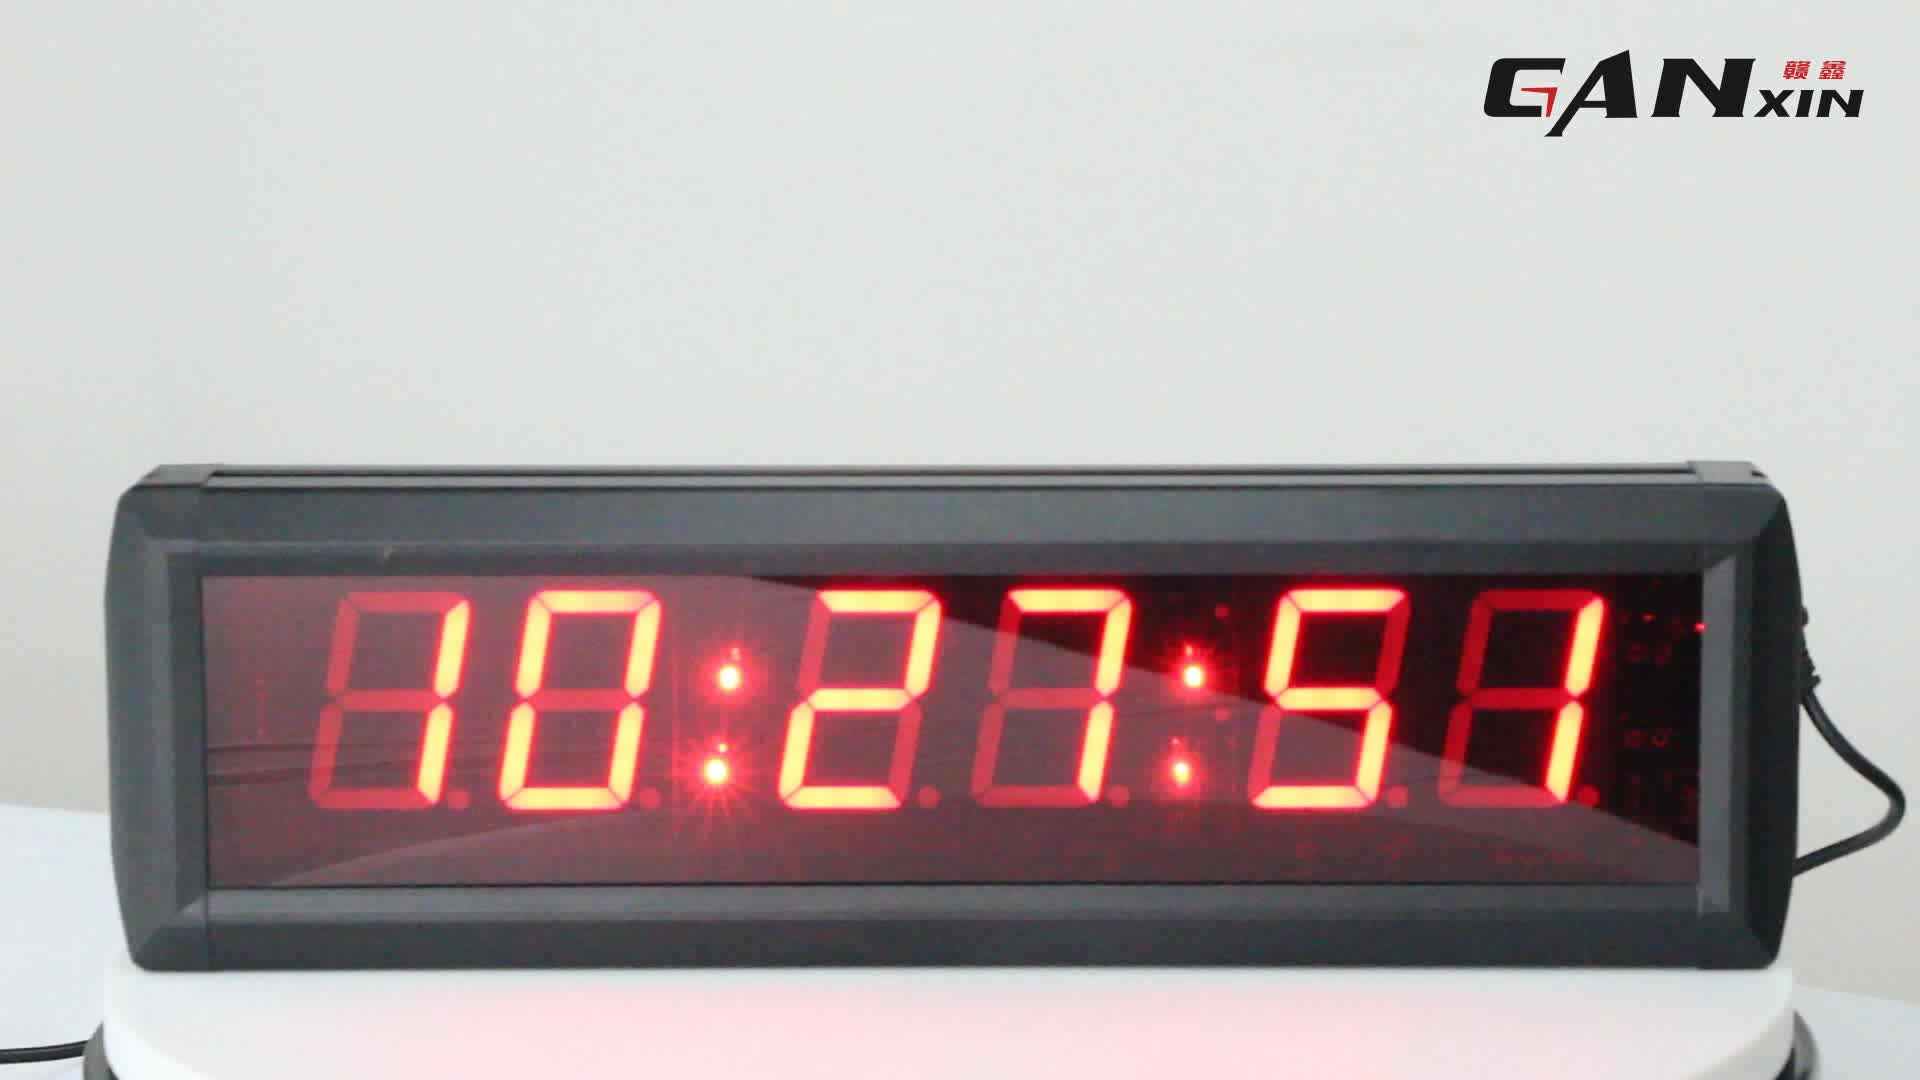 [Ganxin]1.8'' 6 Digits White Color Wireless Wifi Indoor Led Digital Clock Countdown Clock 99:59:59 Led Wall Timer